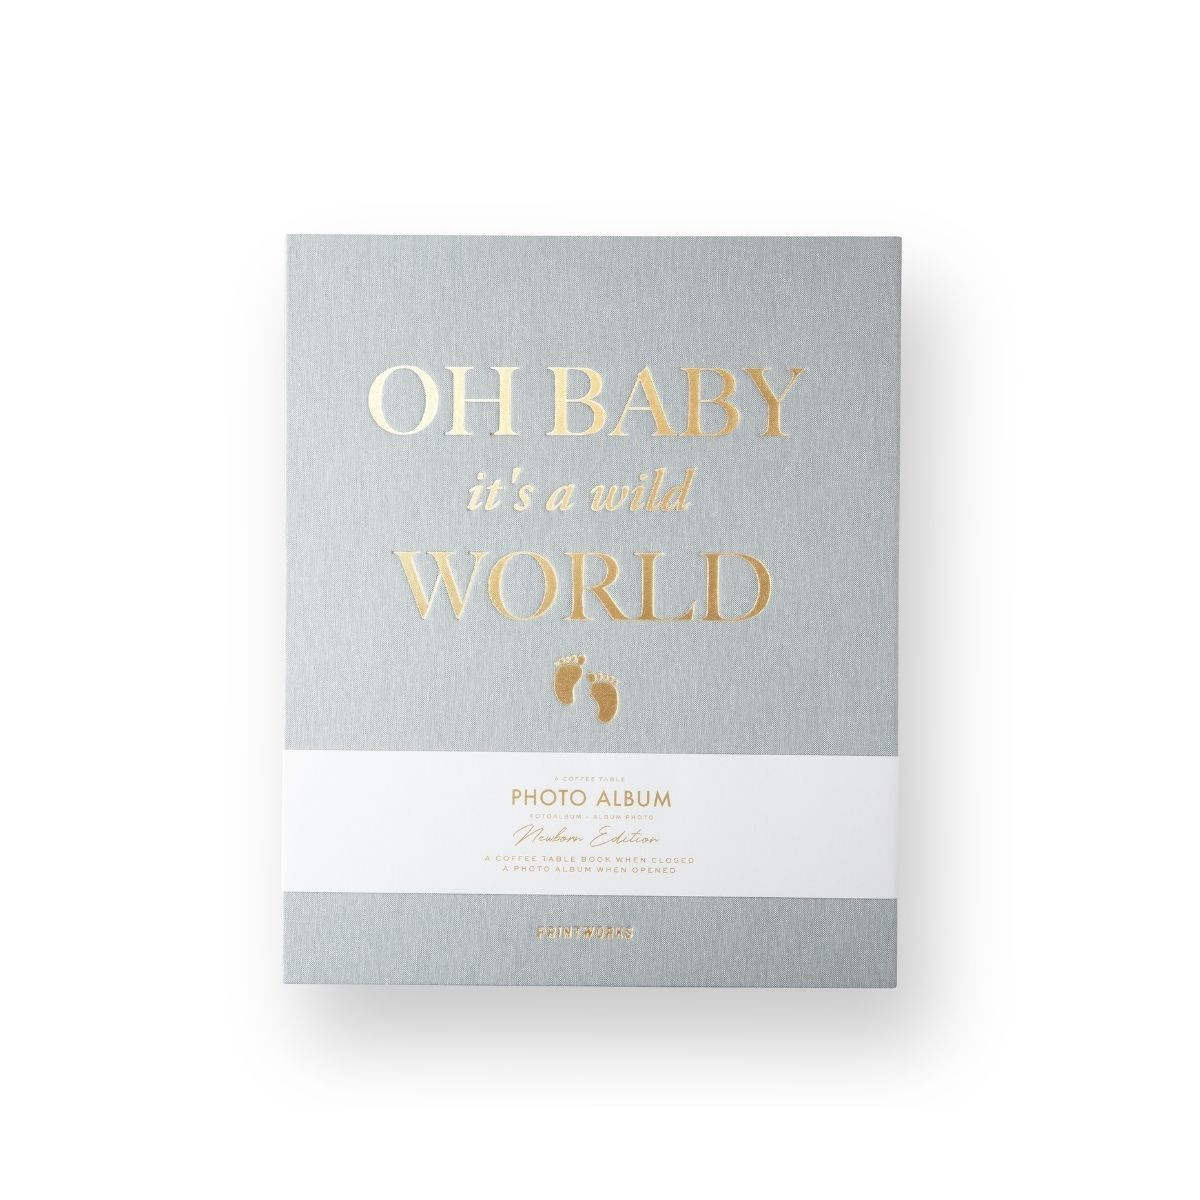 Album - Oh baby it's wild world